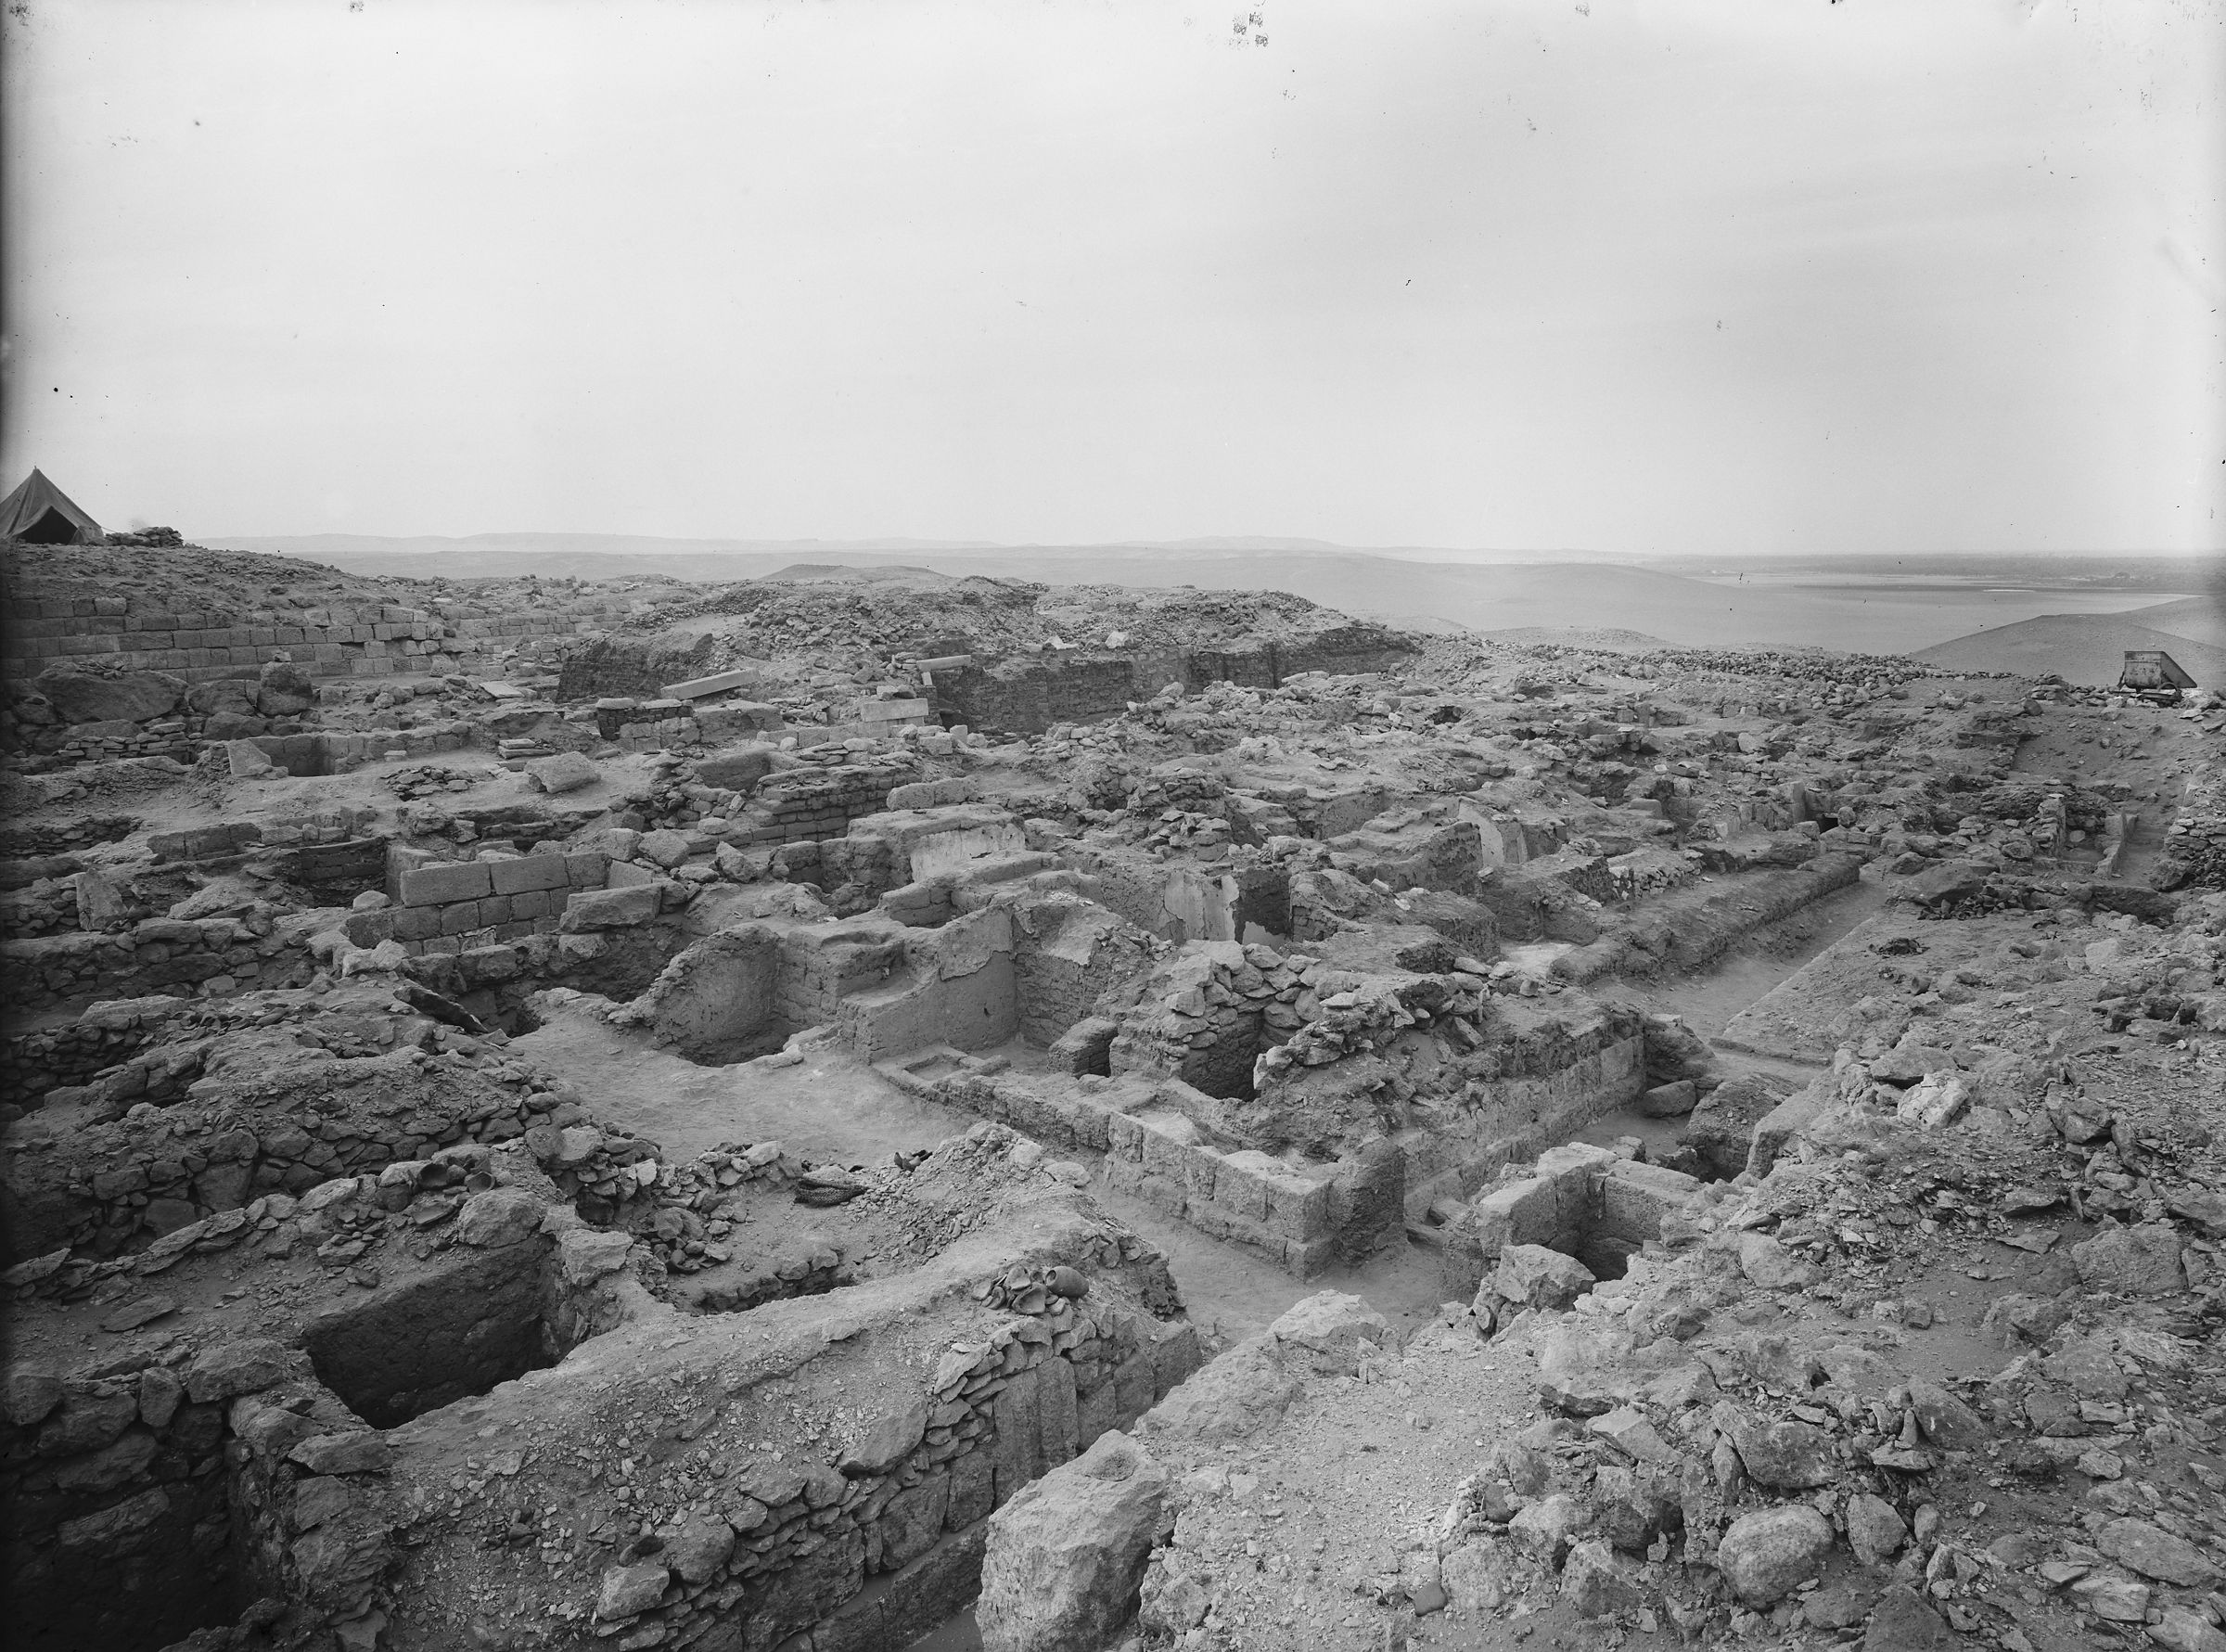 Western Cemetery: Site: Giza; View: G 1106, G 1107, G 1108, G 1109